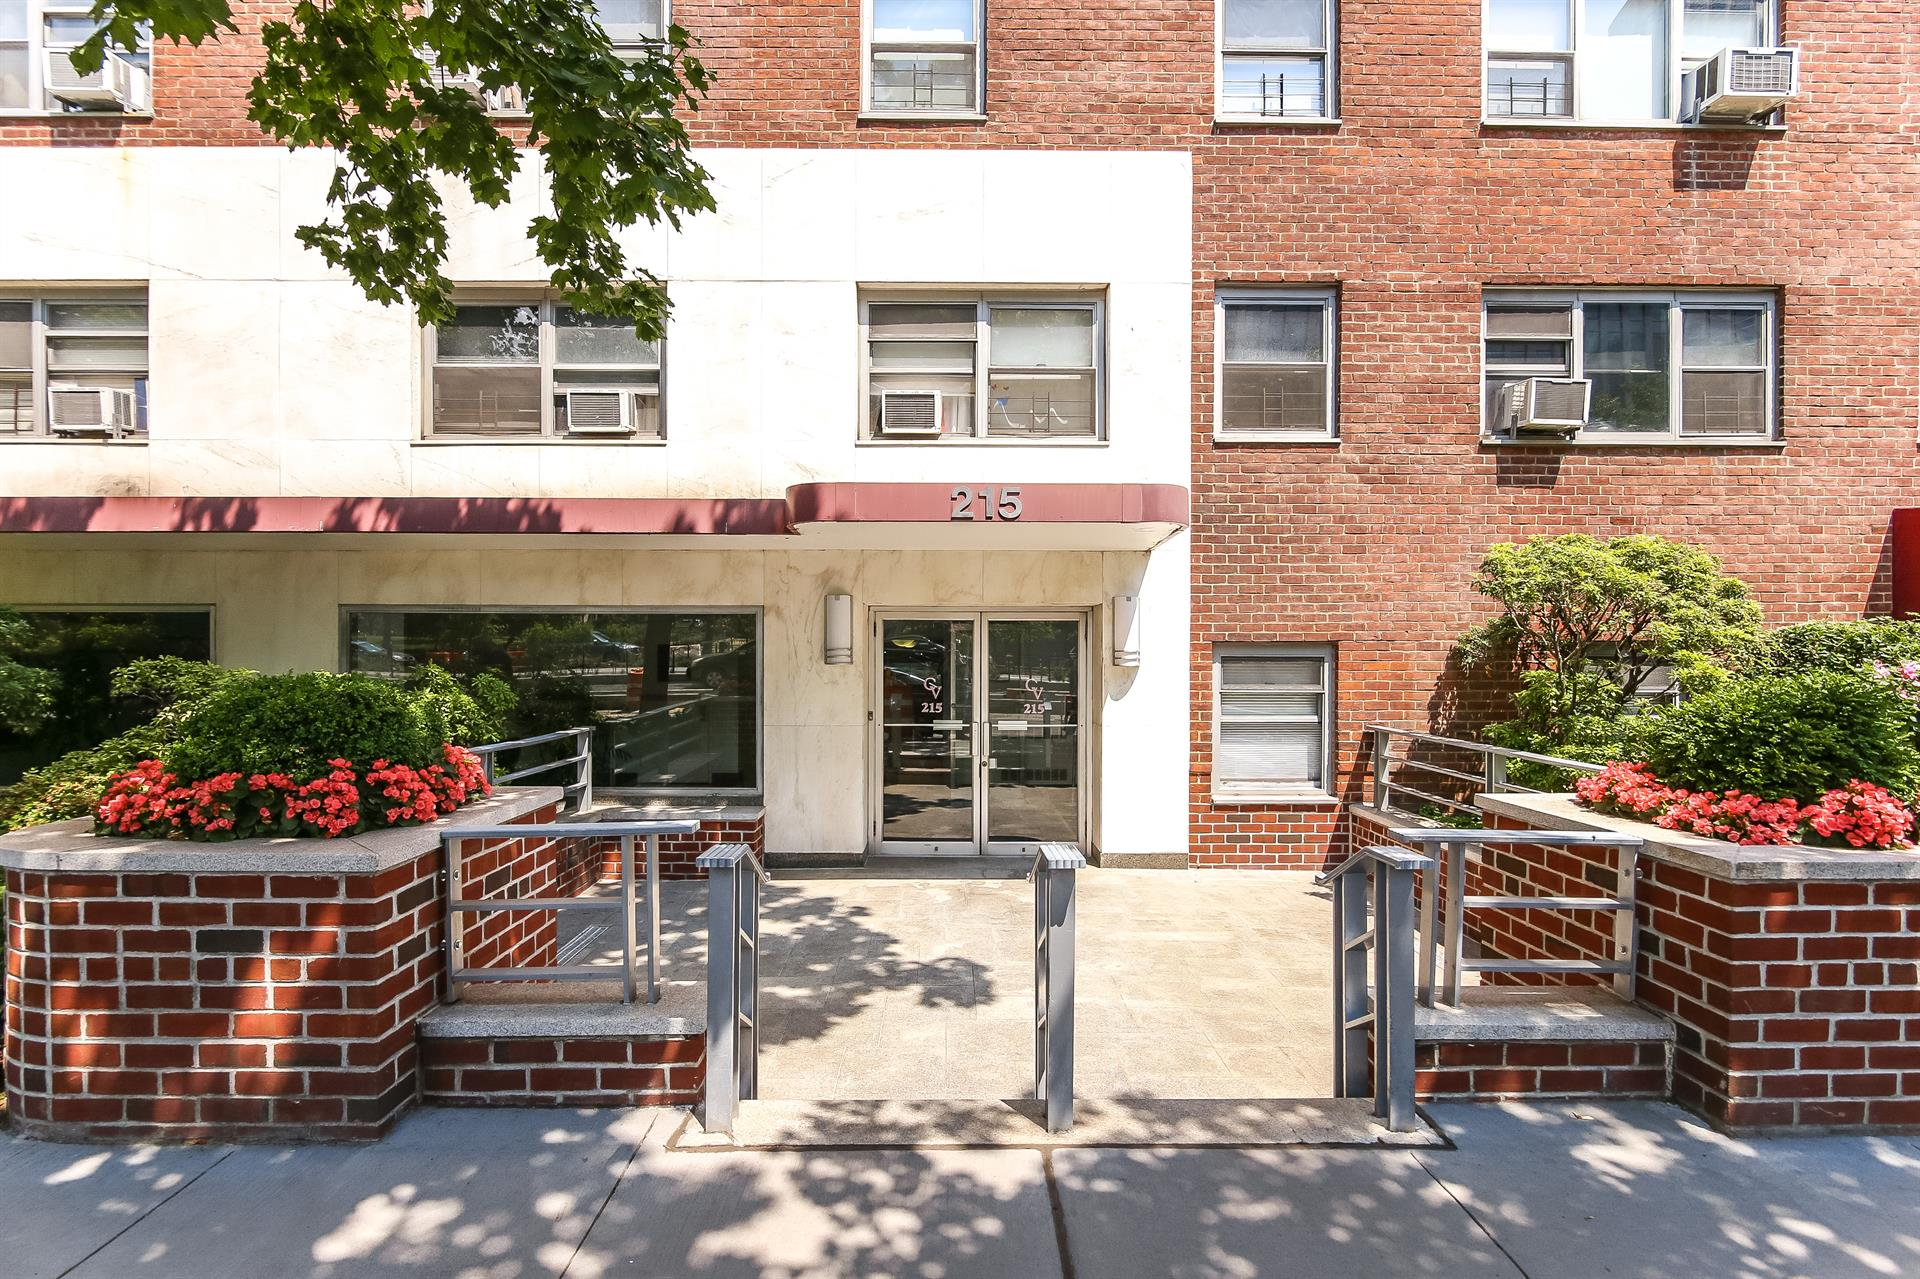 Co-op for Sale at 215 Adam Street #7d Brooklyn, New York 11201 United States